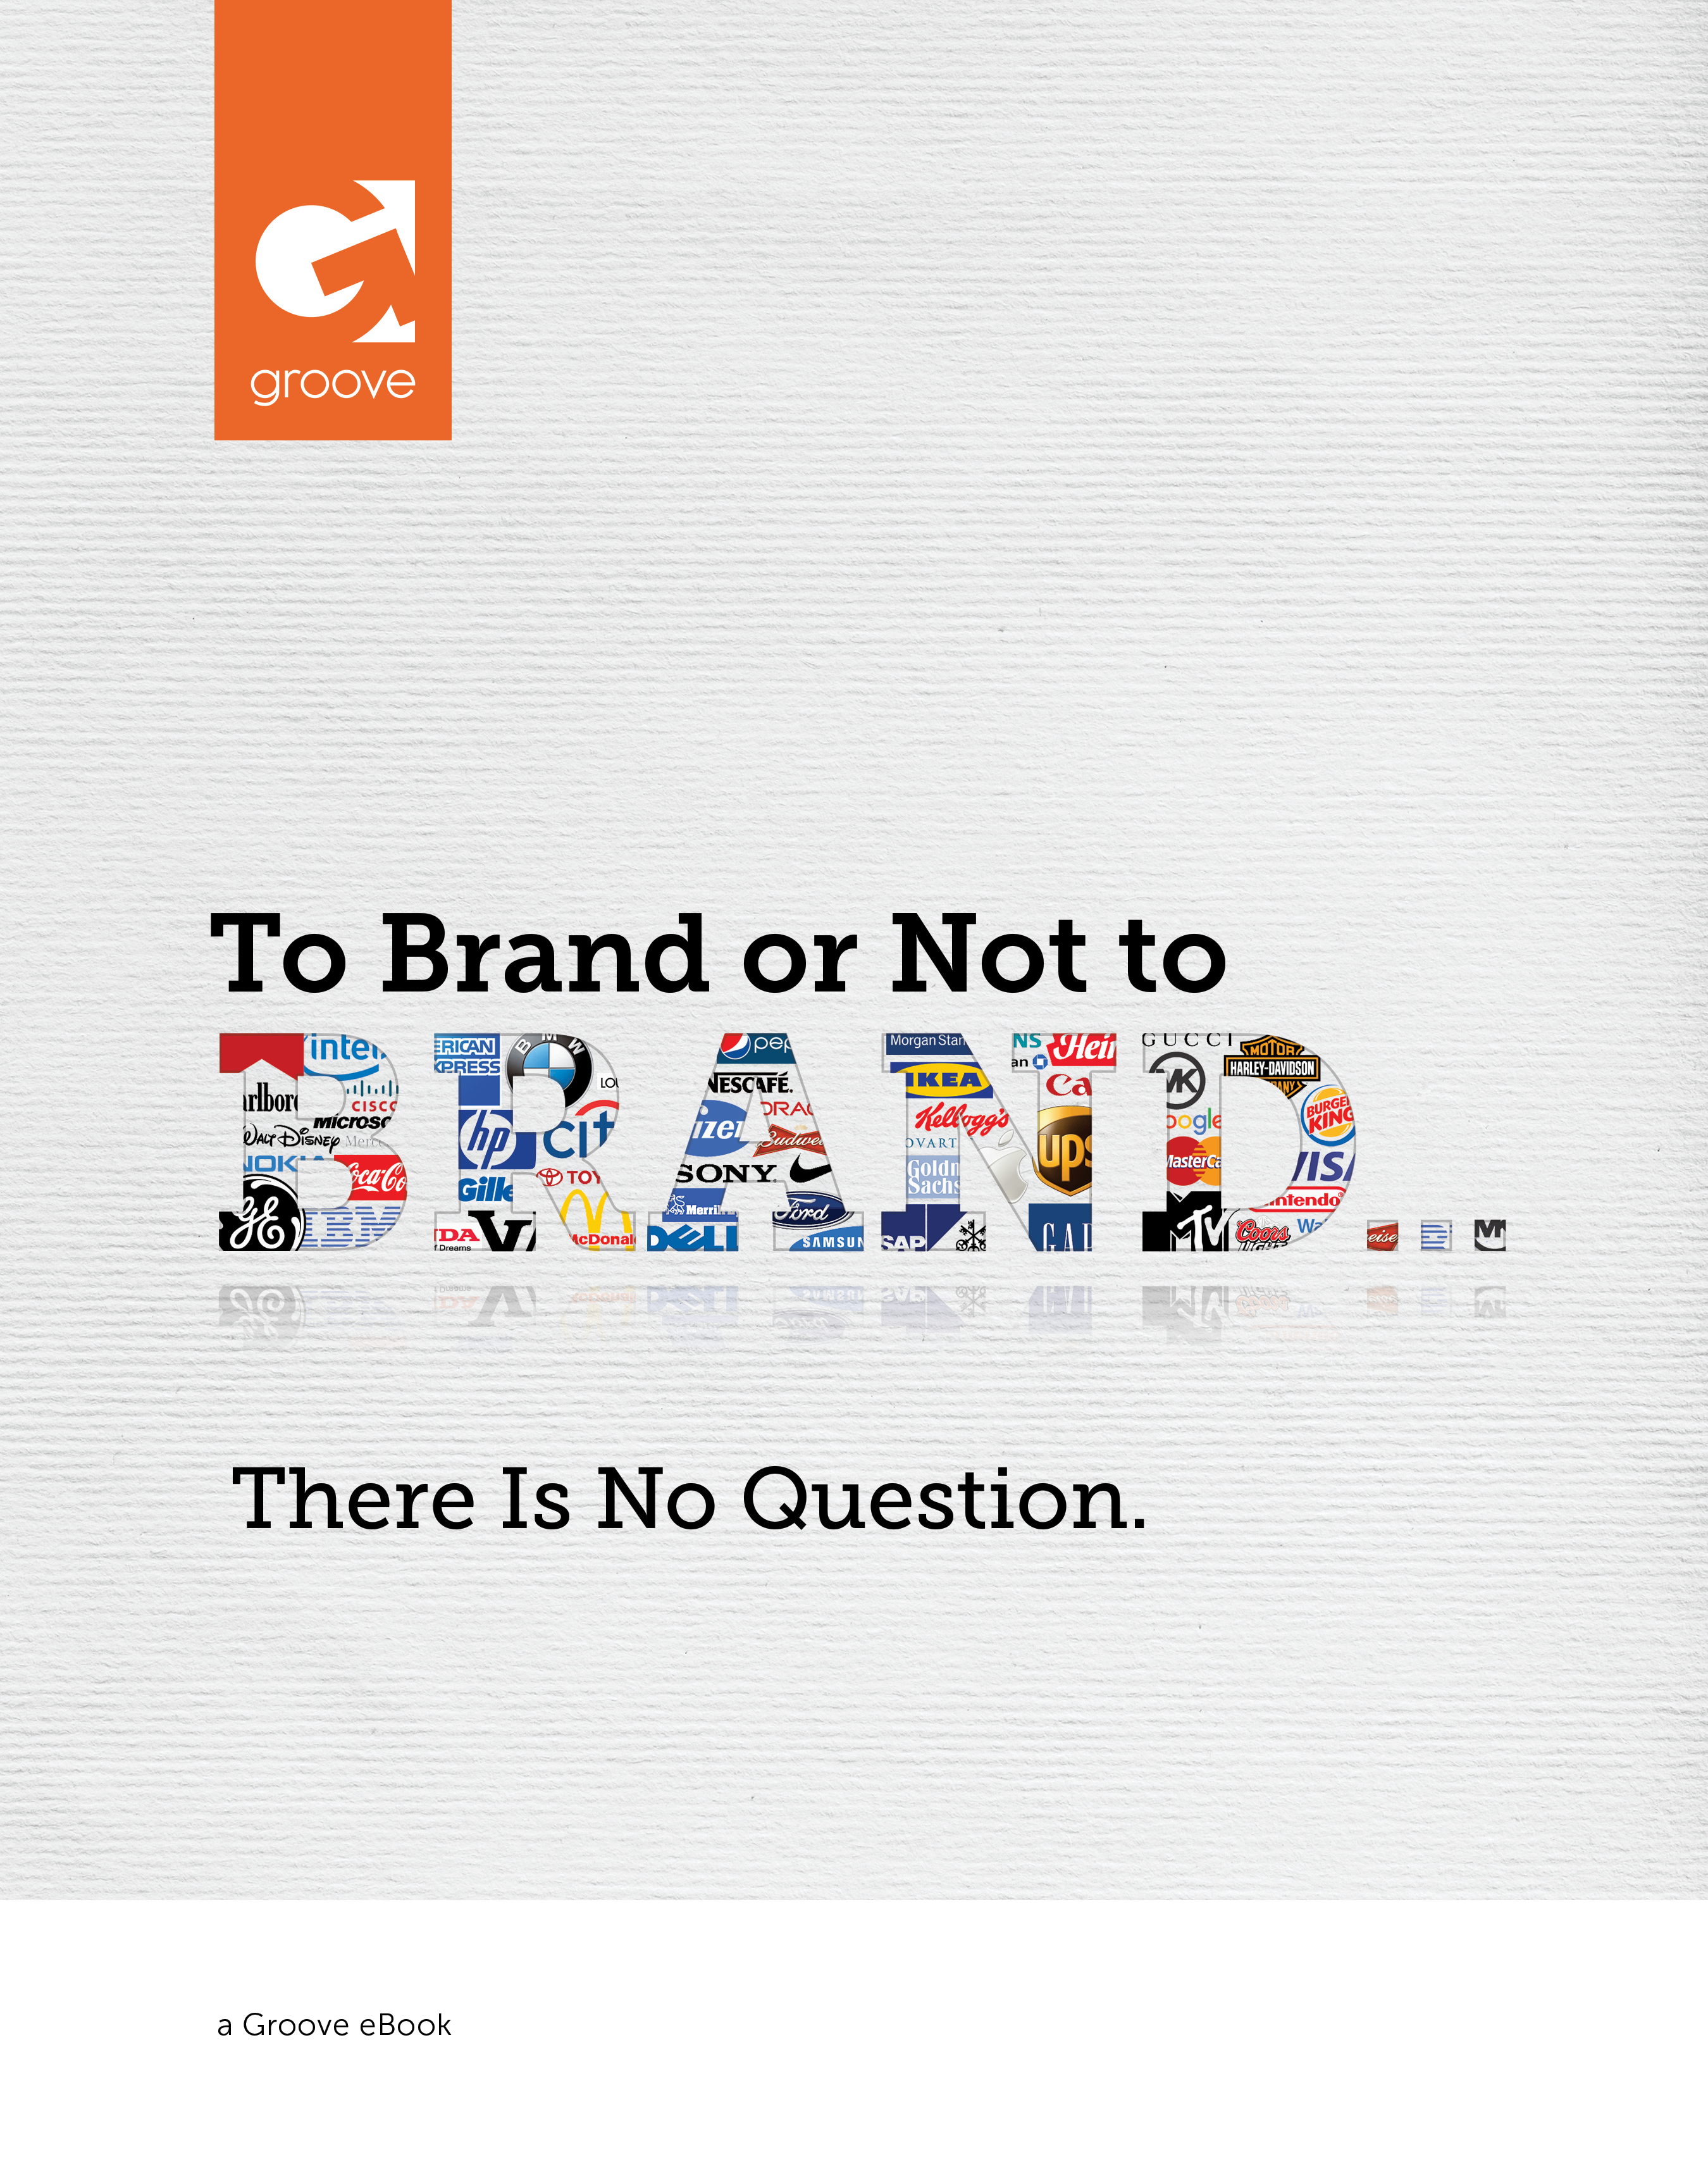 To Brand or Not to Brand